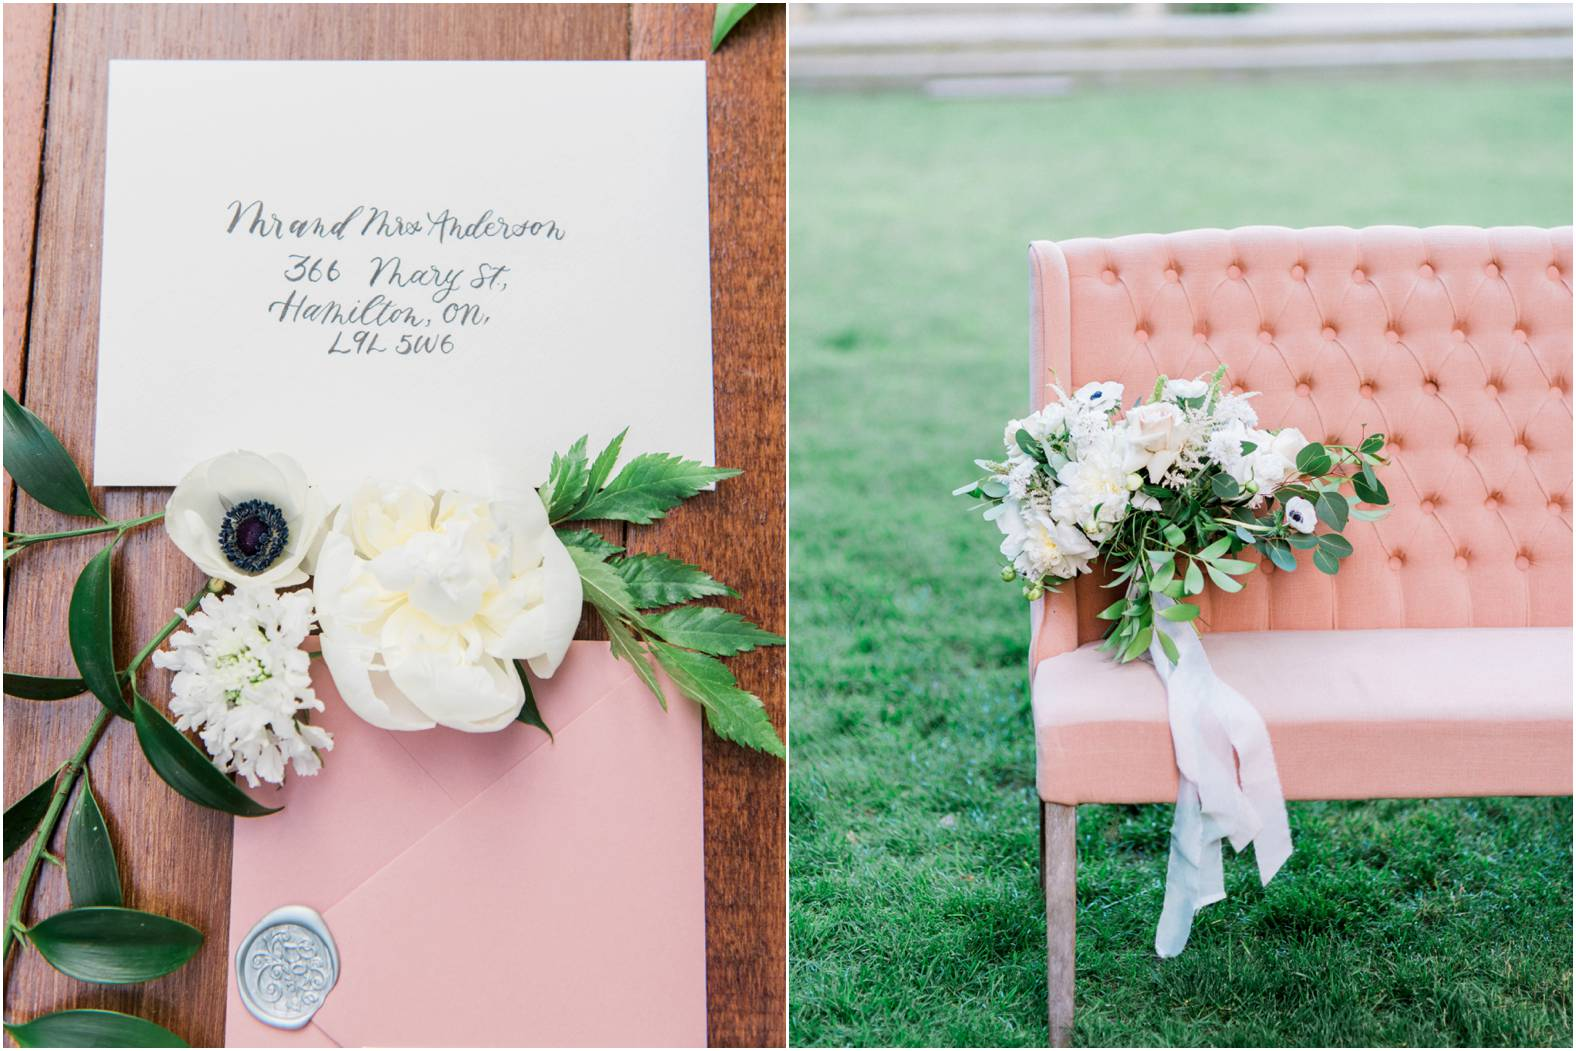 Calligraphy invitation set with anemone and loose neutral wedding bouquet styled on pink blush linen sofa